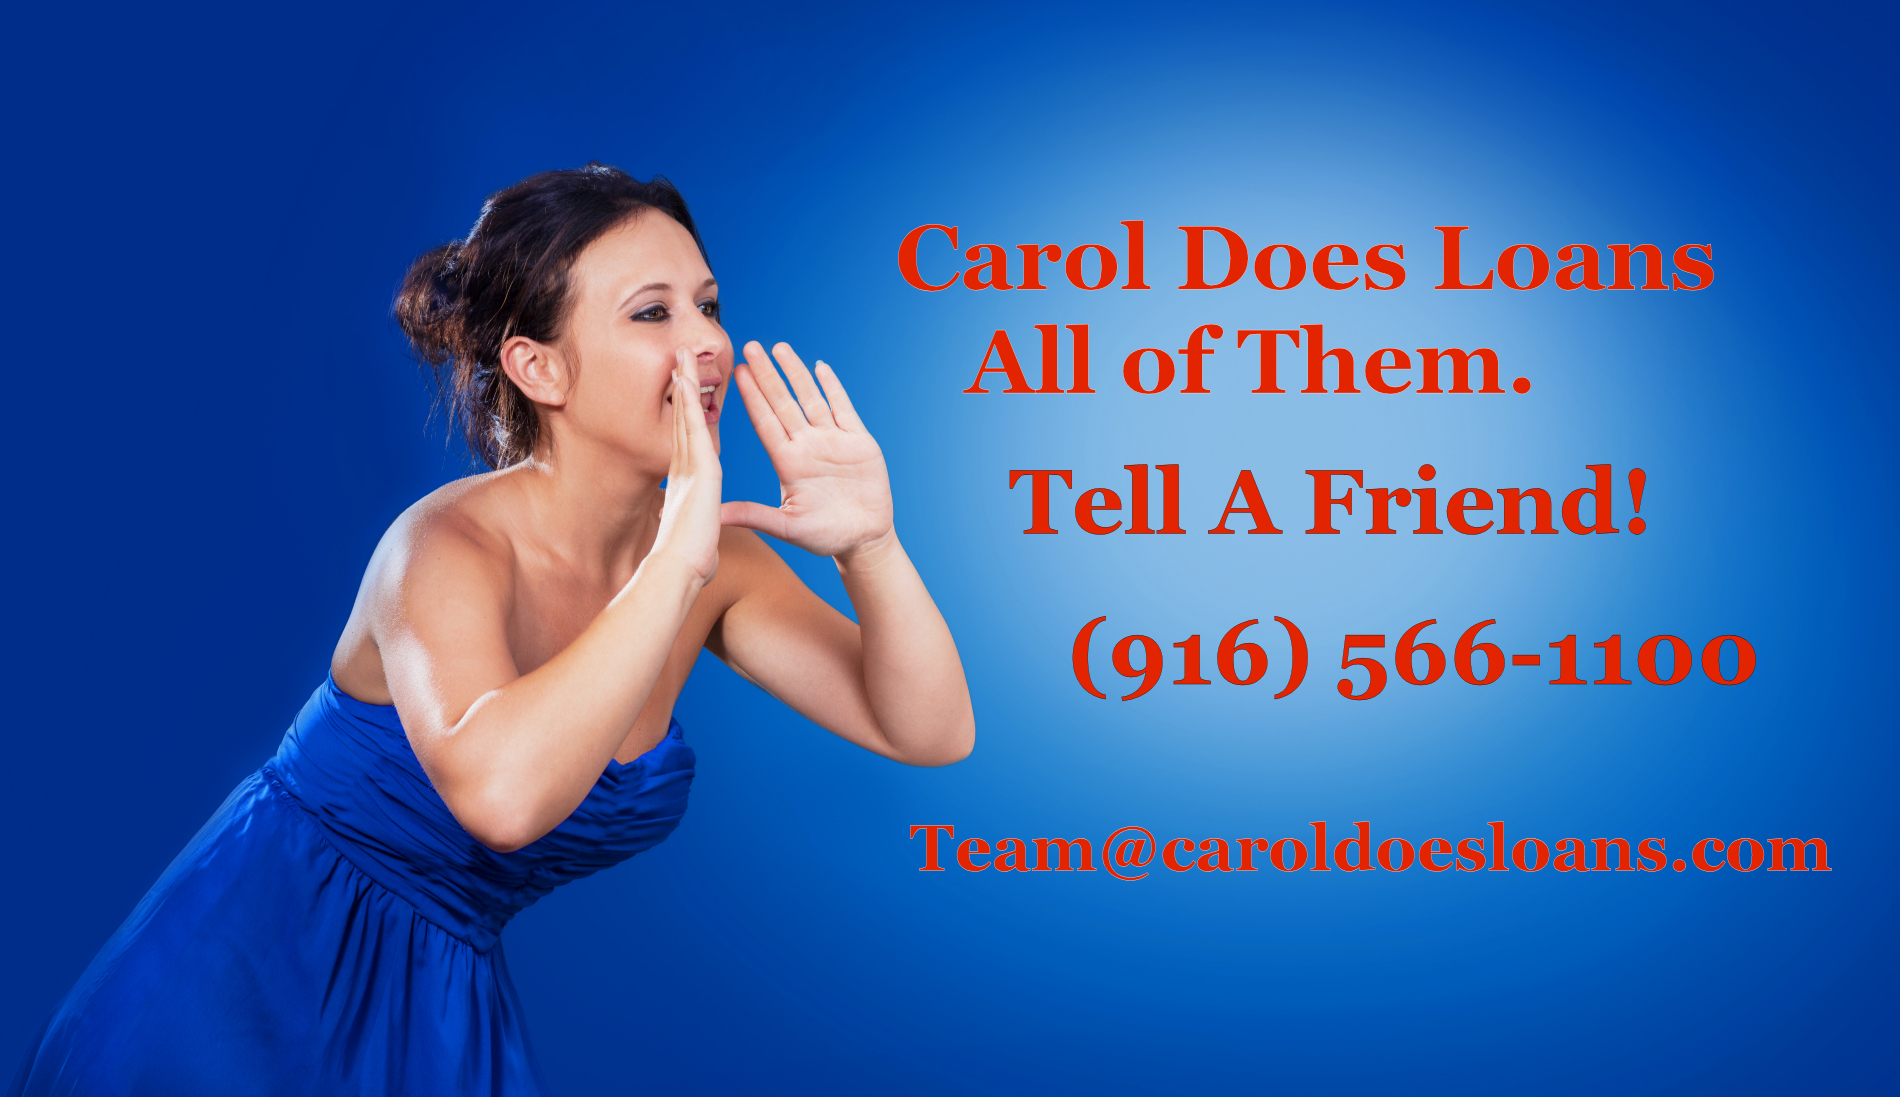 Carol Does Loans - All of Them